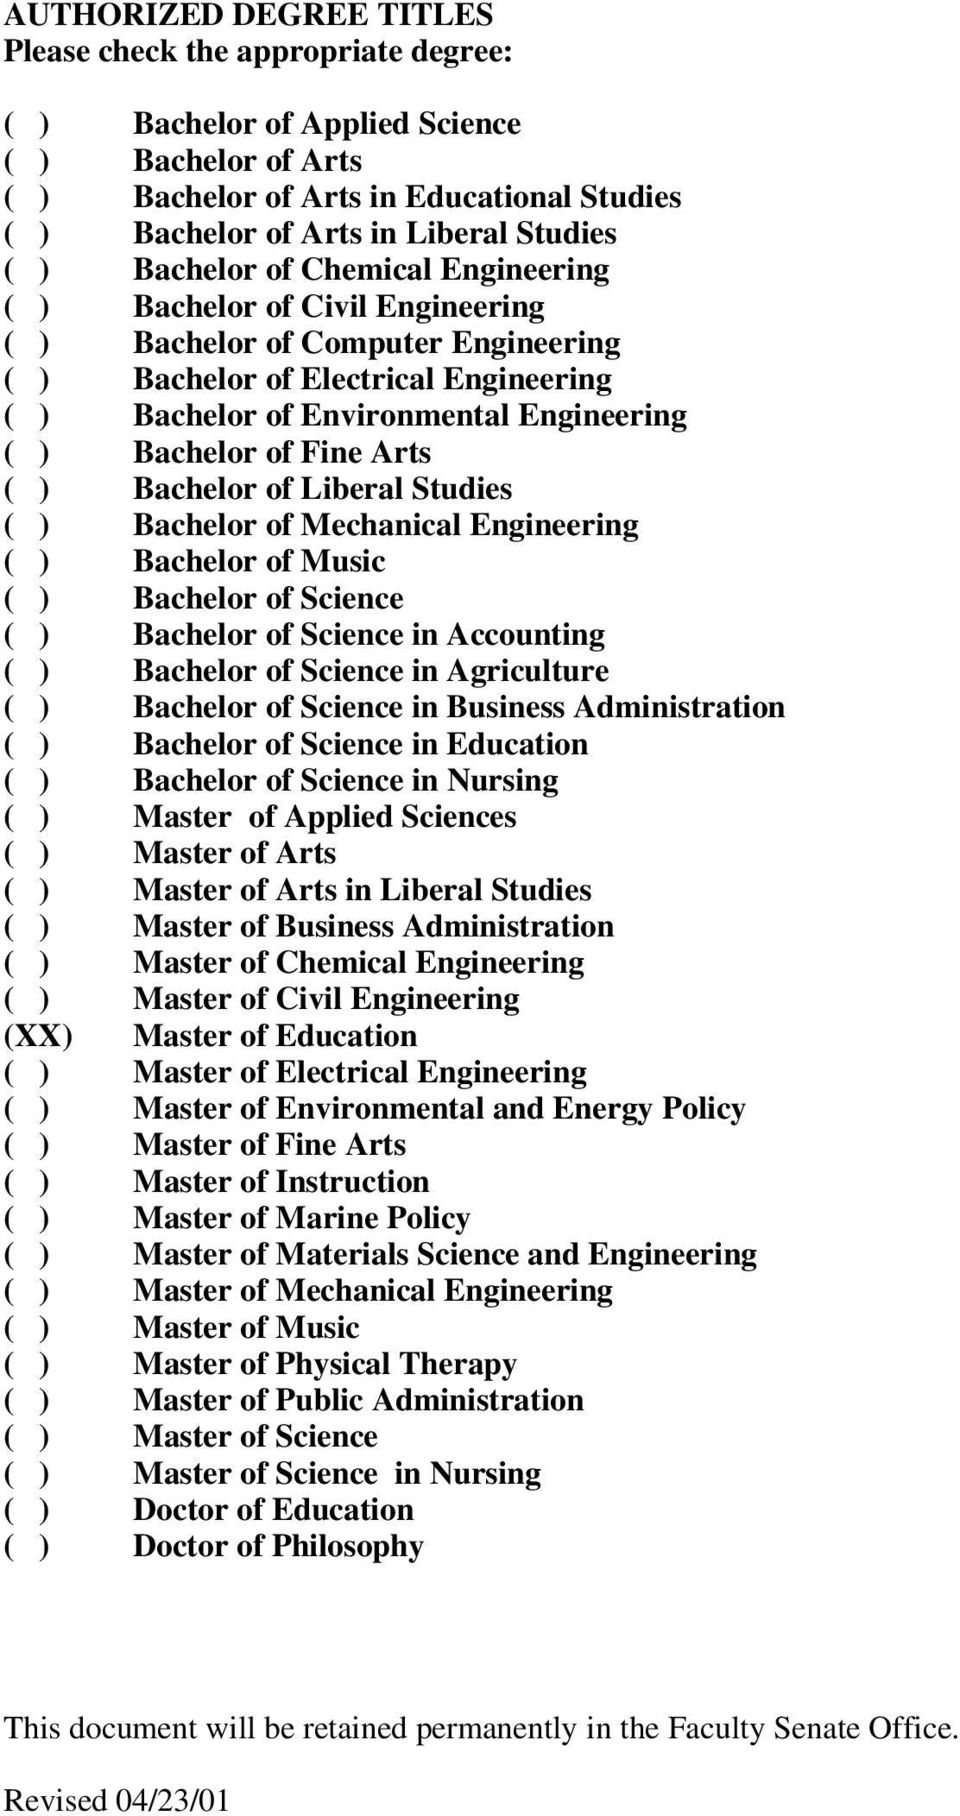 Bachelor of Fine Arts ( ) Bachelor of Liberal Studies ( ) Bachelor of Mechanical Engineering ( ) Bachelor of Music ( ) Bachelor of Science ( ) Bachelor of Science in Accounting ( ) Bachelor of